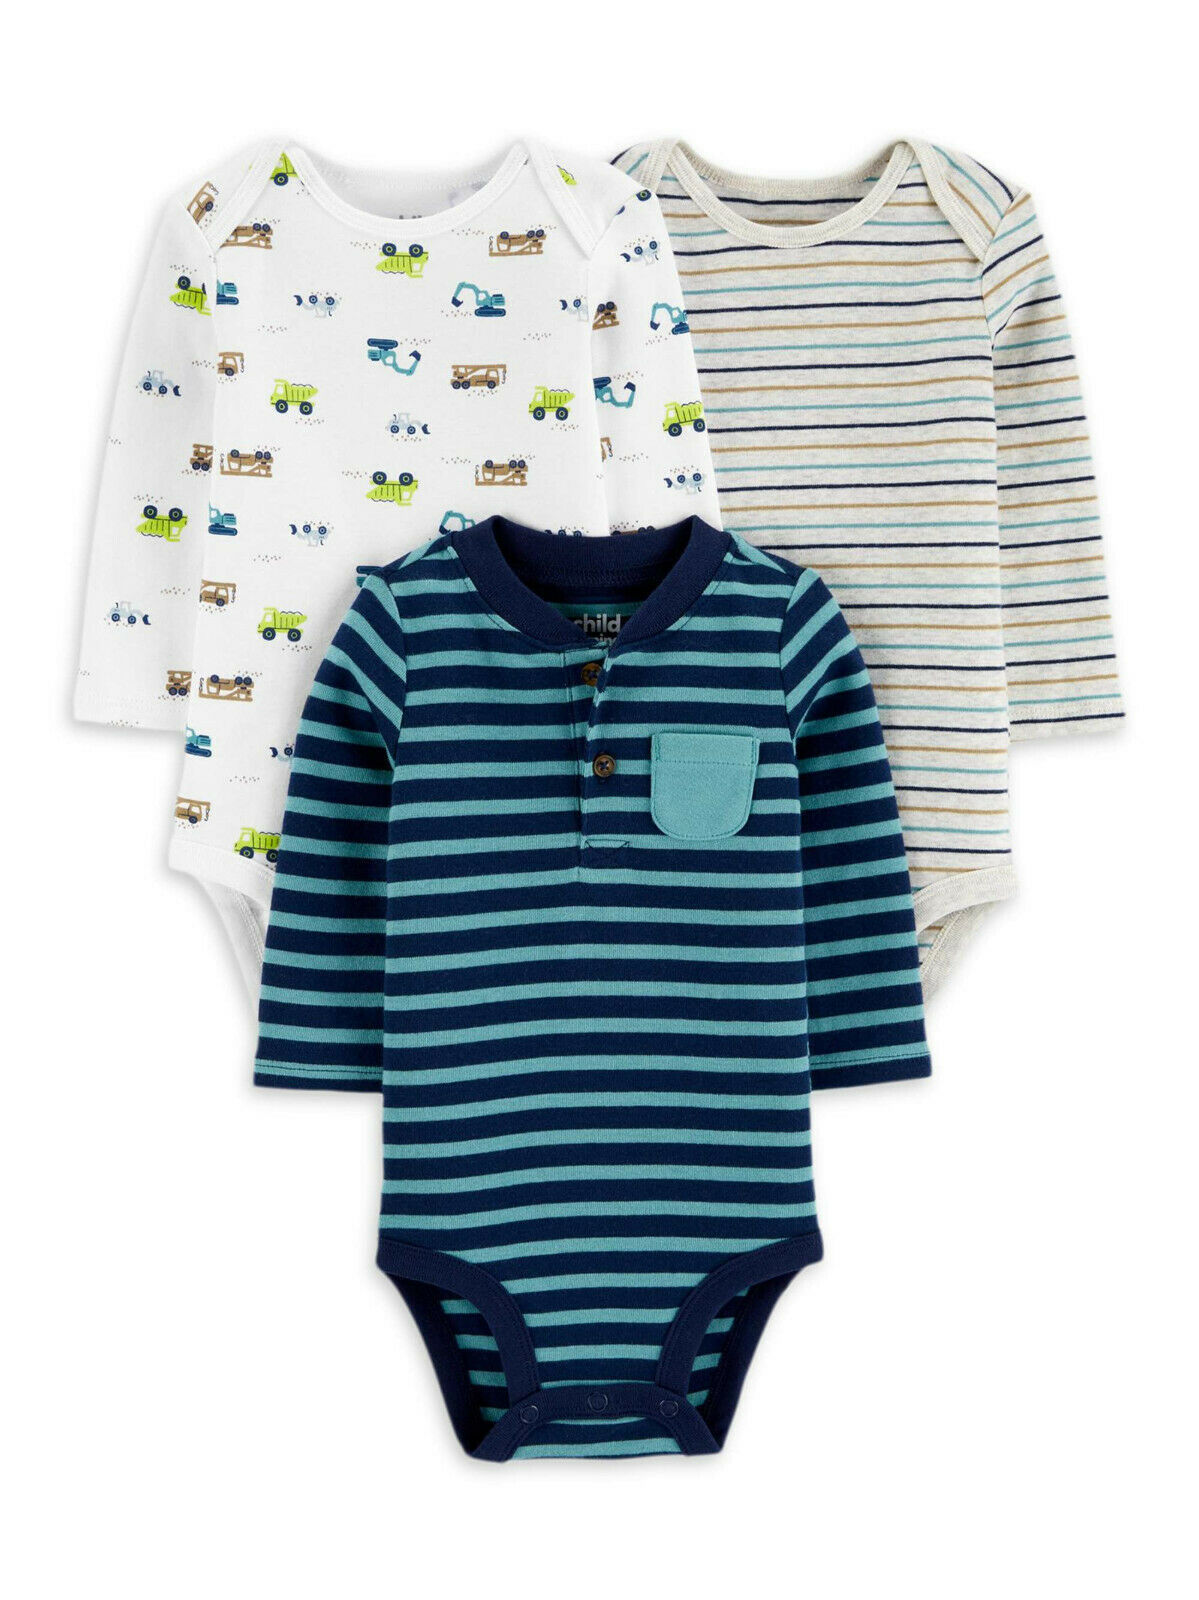 Child of Mine by Carter's Baby Boy Long Sleeve Bodysuits, 3-Pack 0-3M - $24.99